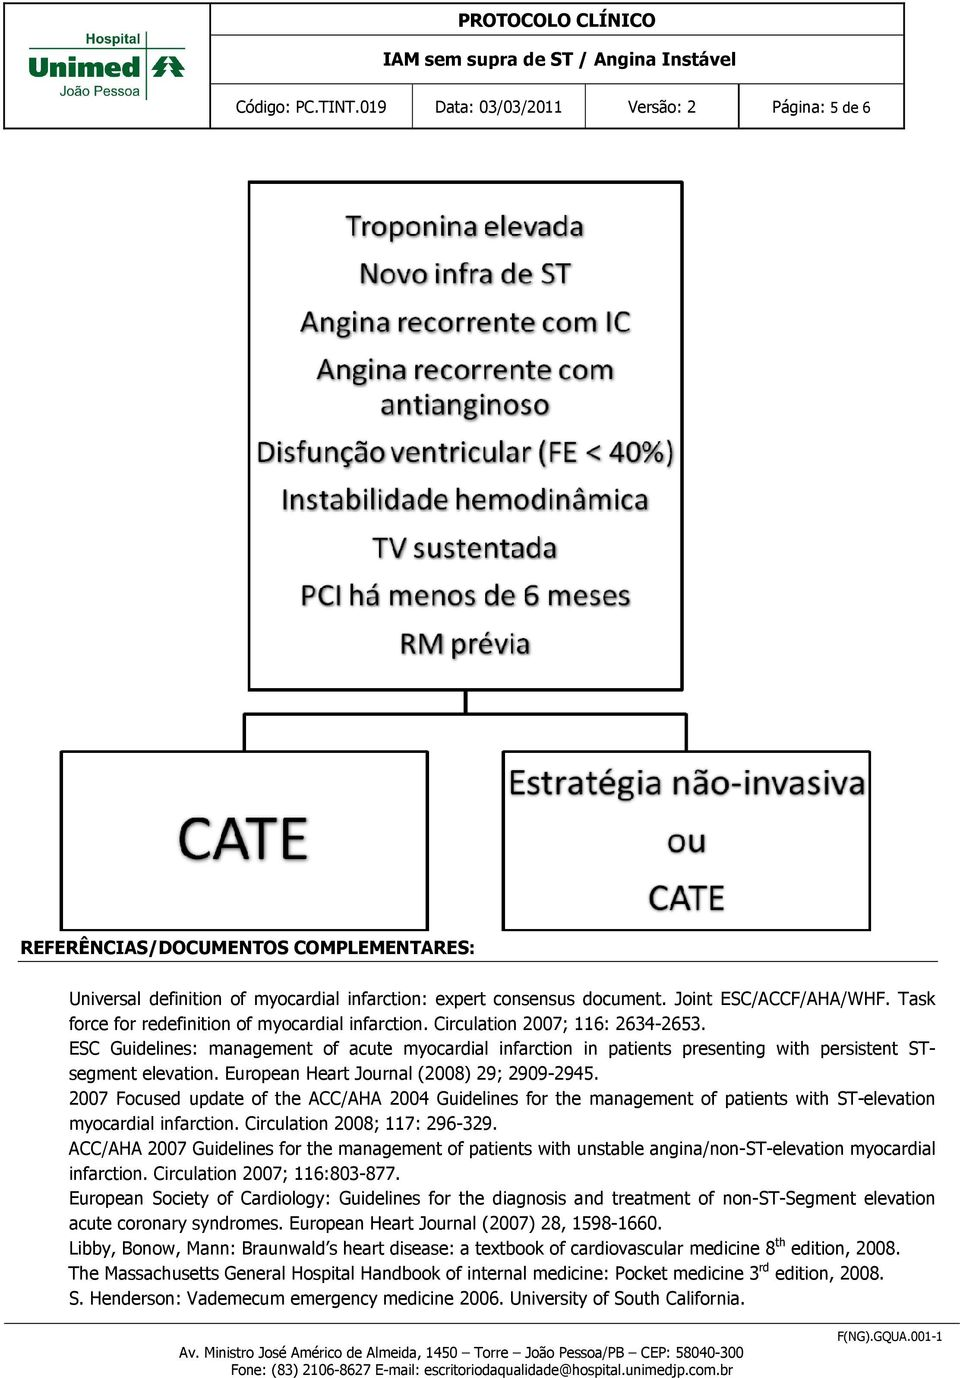 ESC Guidelines: management of acute myocardial infarction in patients presenting with persistent STsegment elevation. European Heart Journal (2008) 29; 2909-2945.